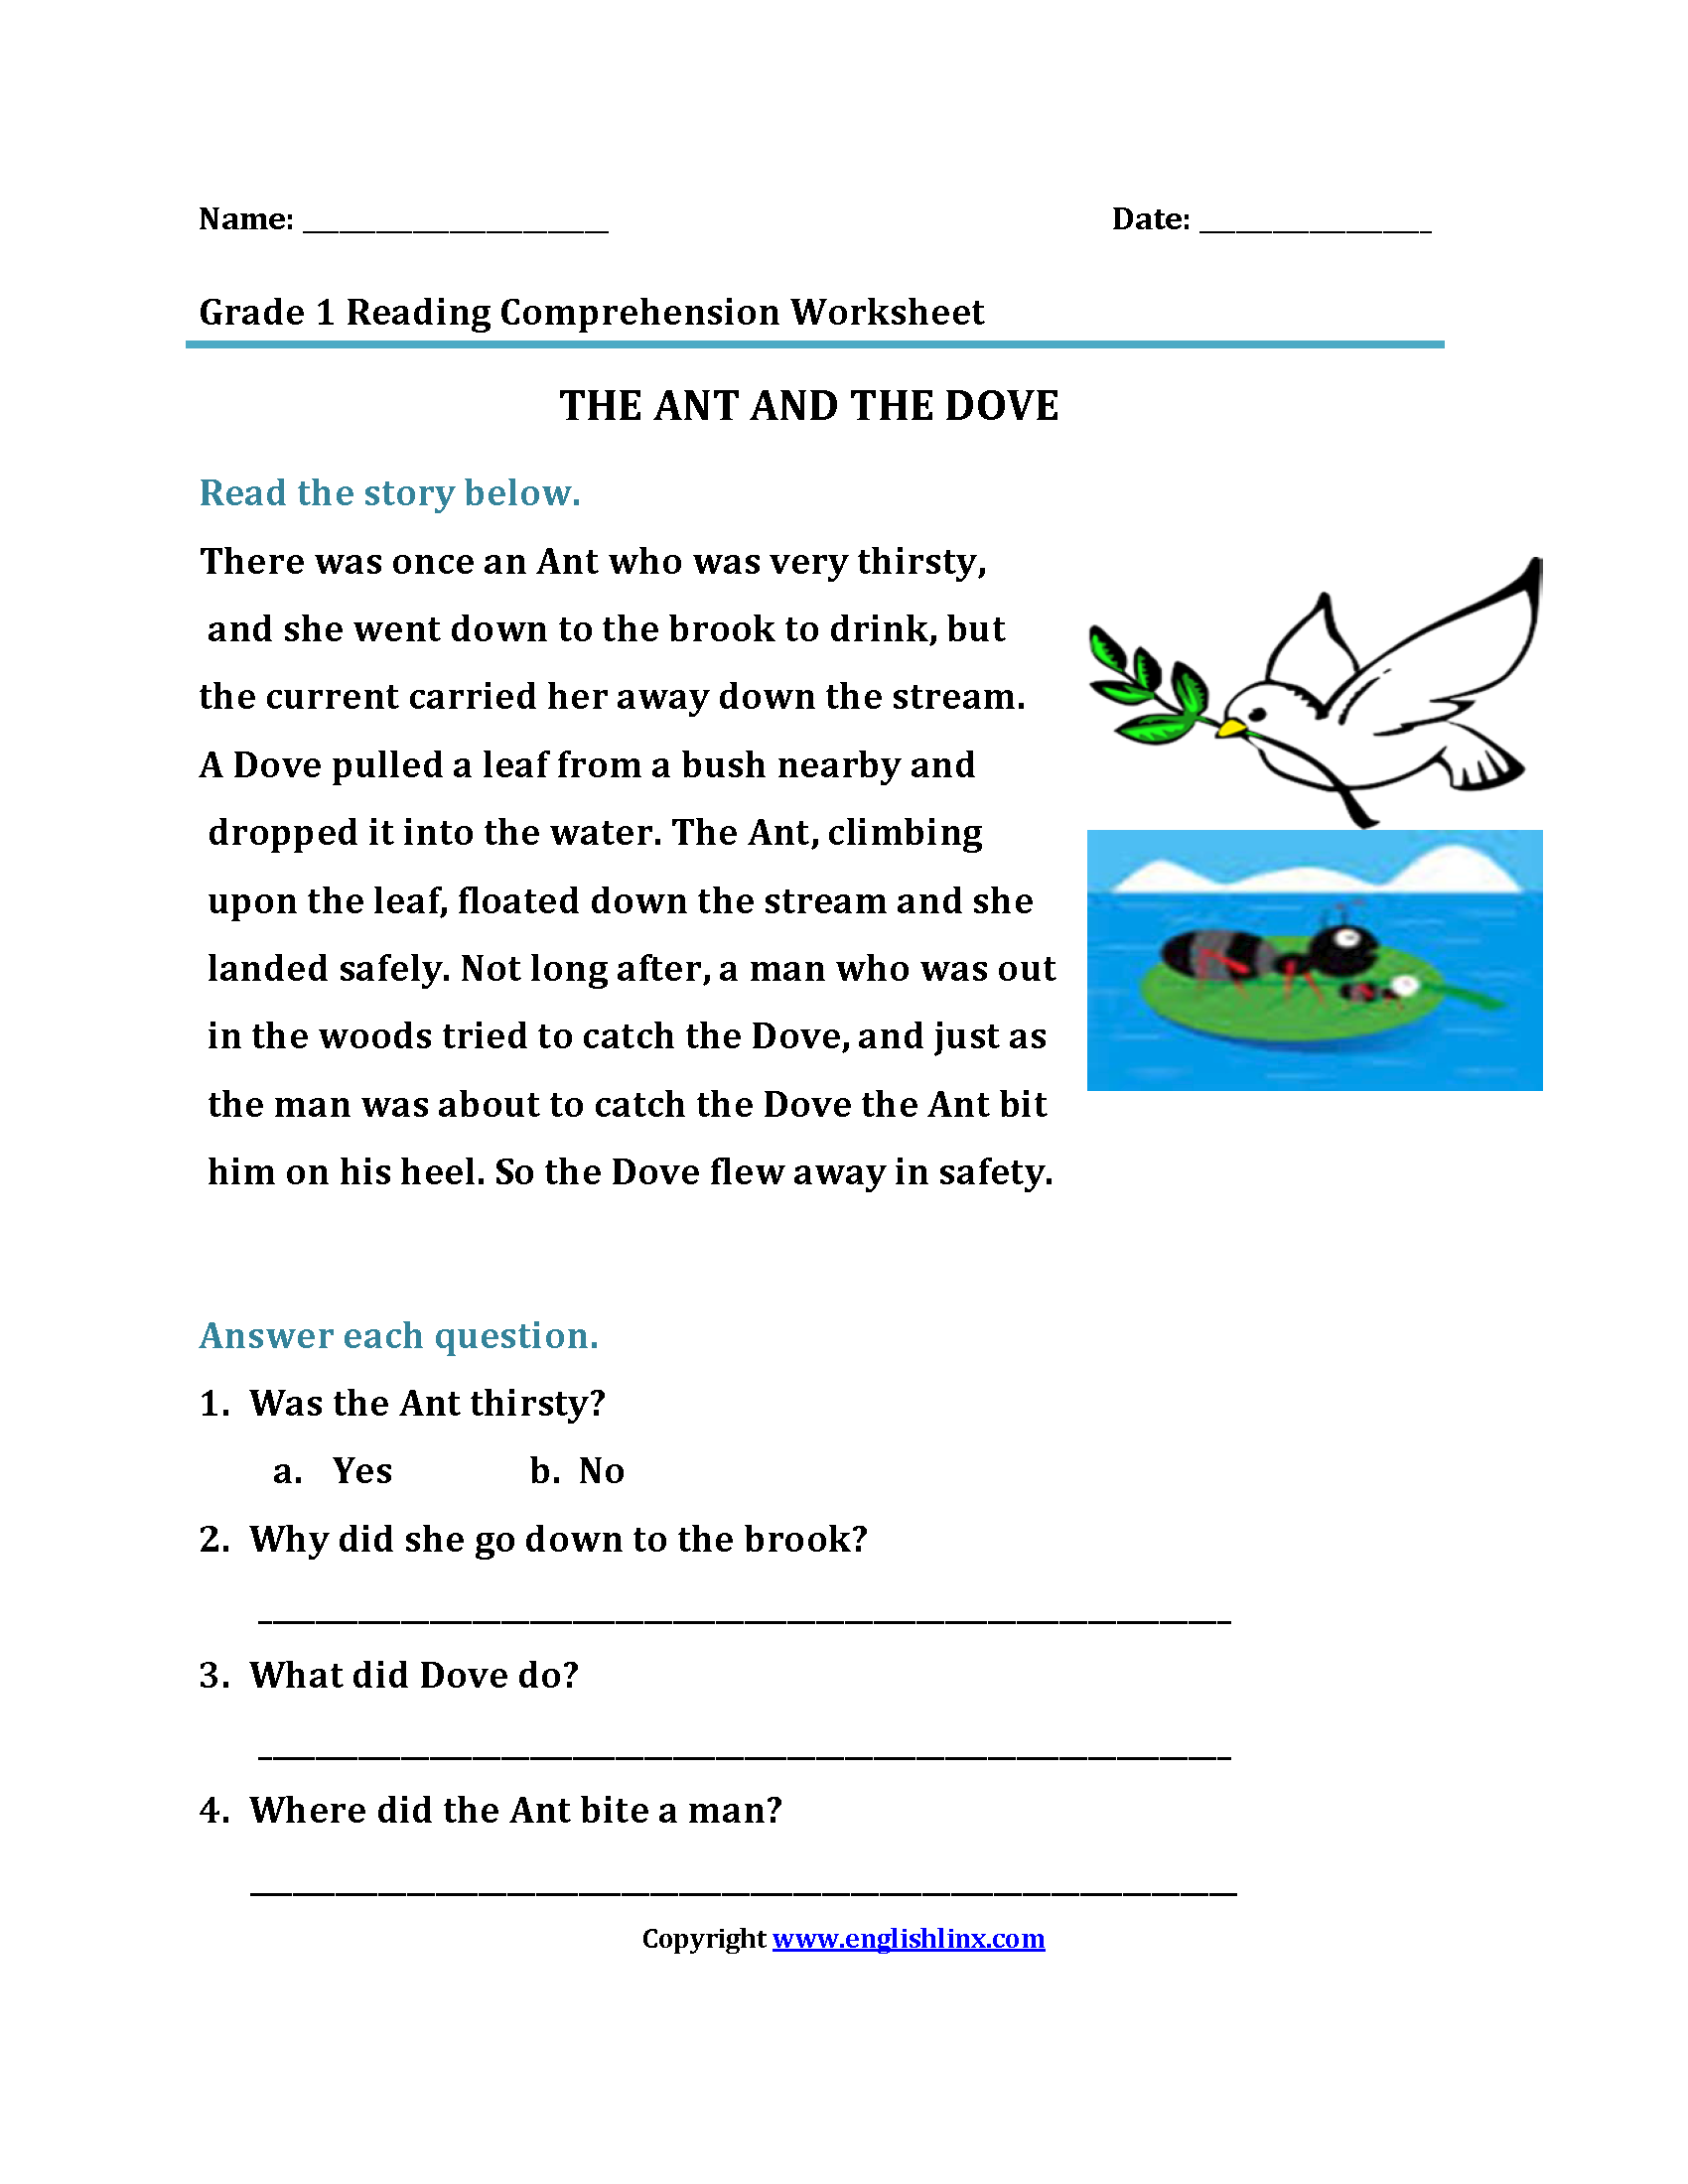 Reading Worksheets Reading prehension Pinterest